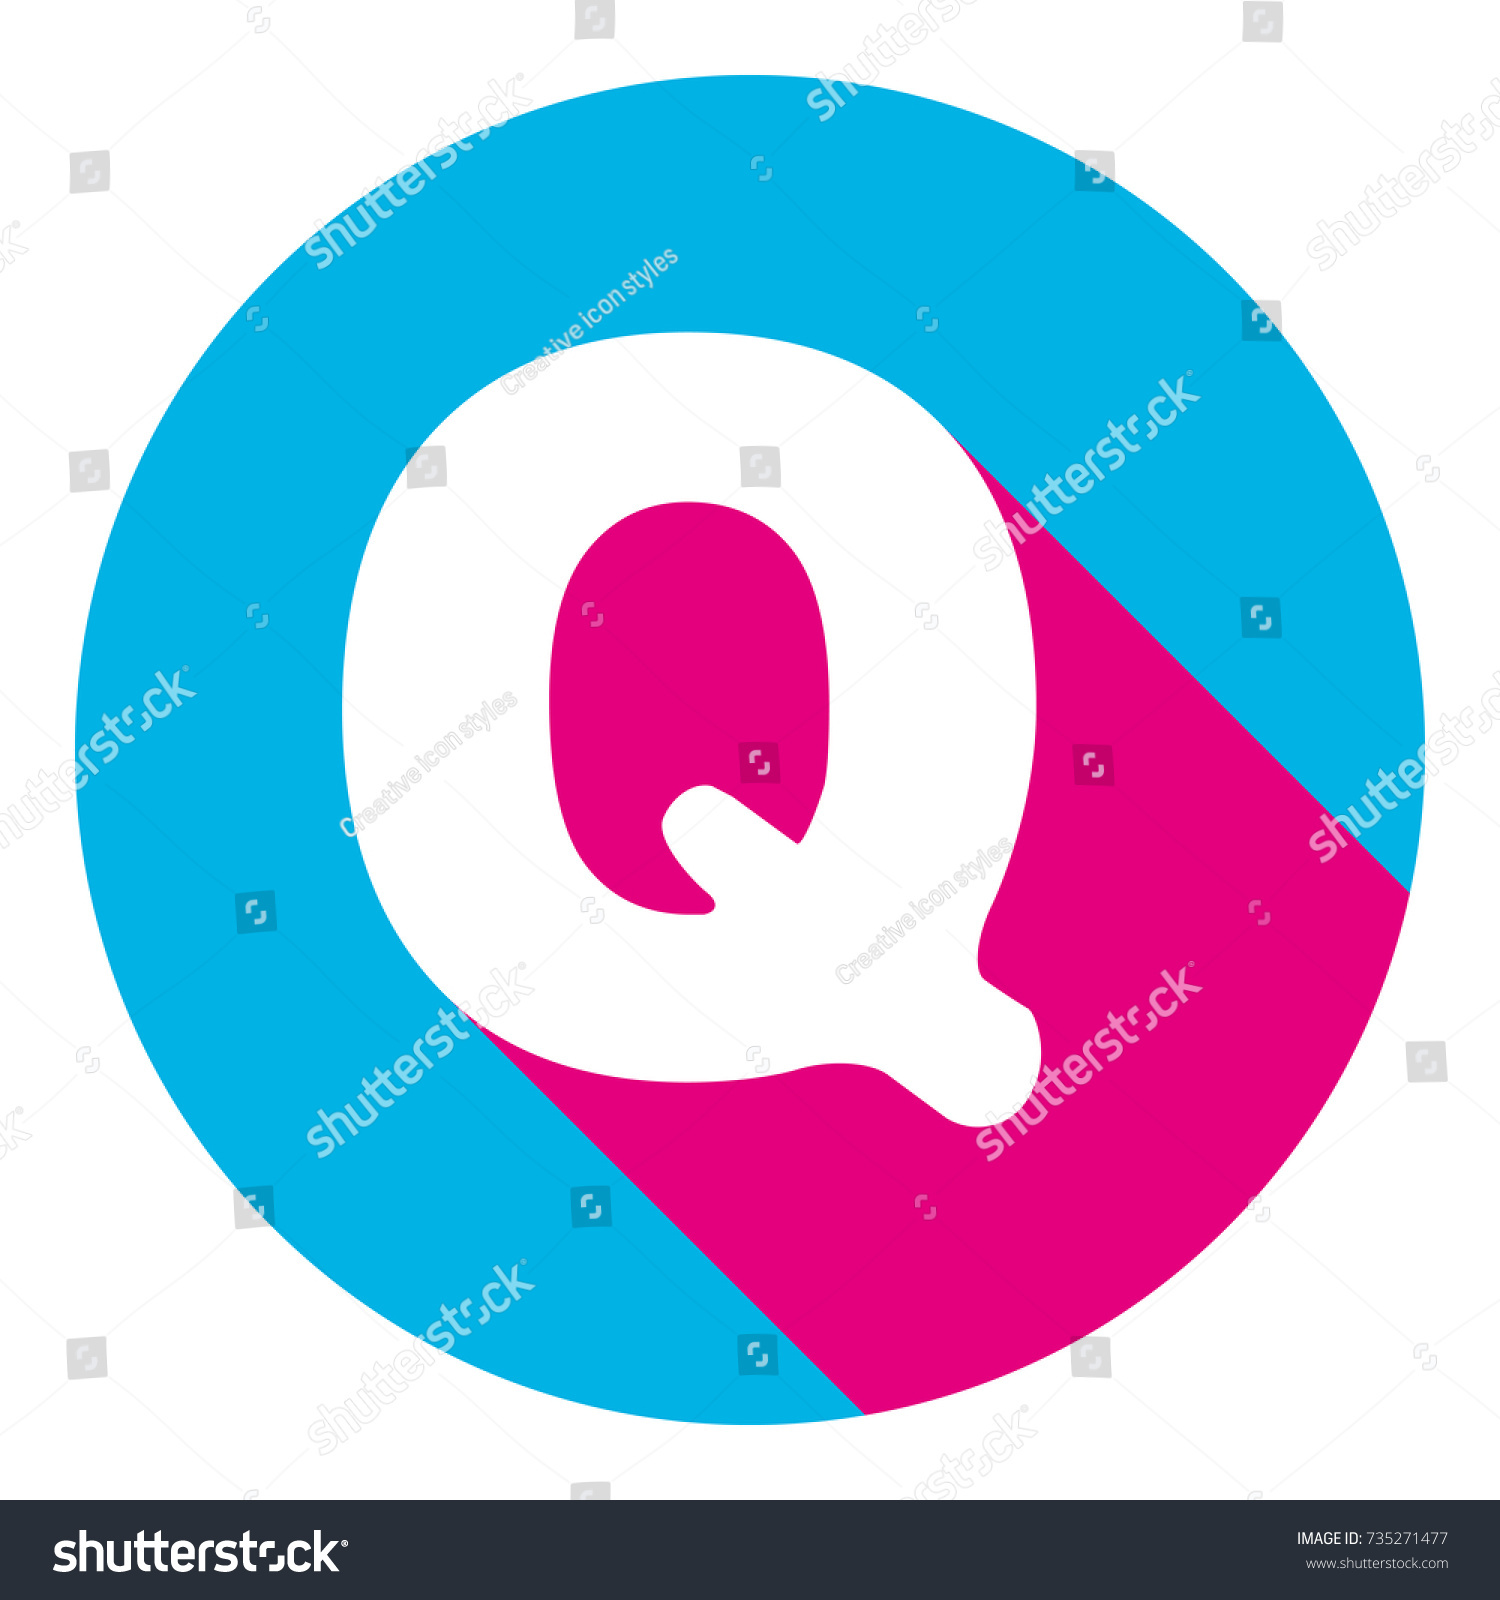 Letter Q sign design template element. Vector. Flat white icon with mexican  pink shadow